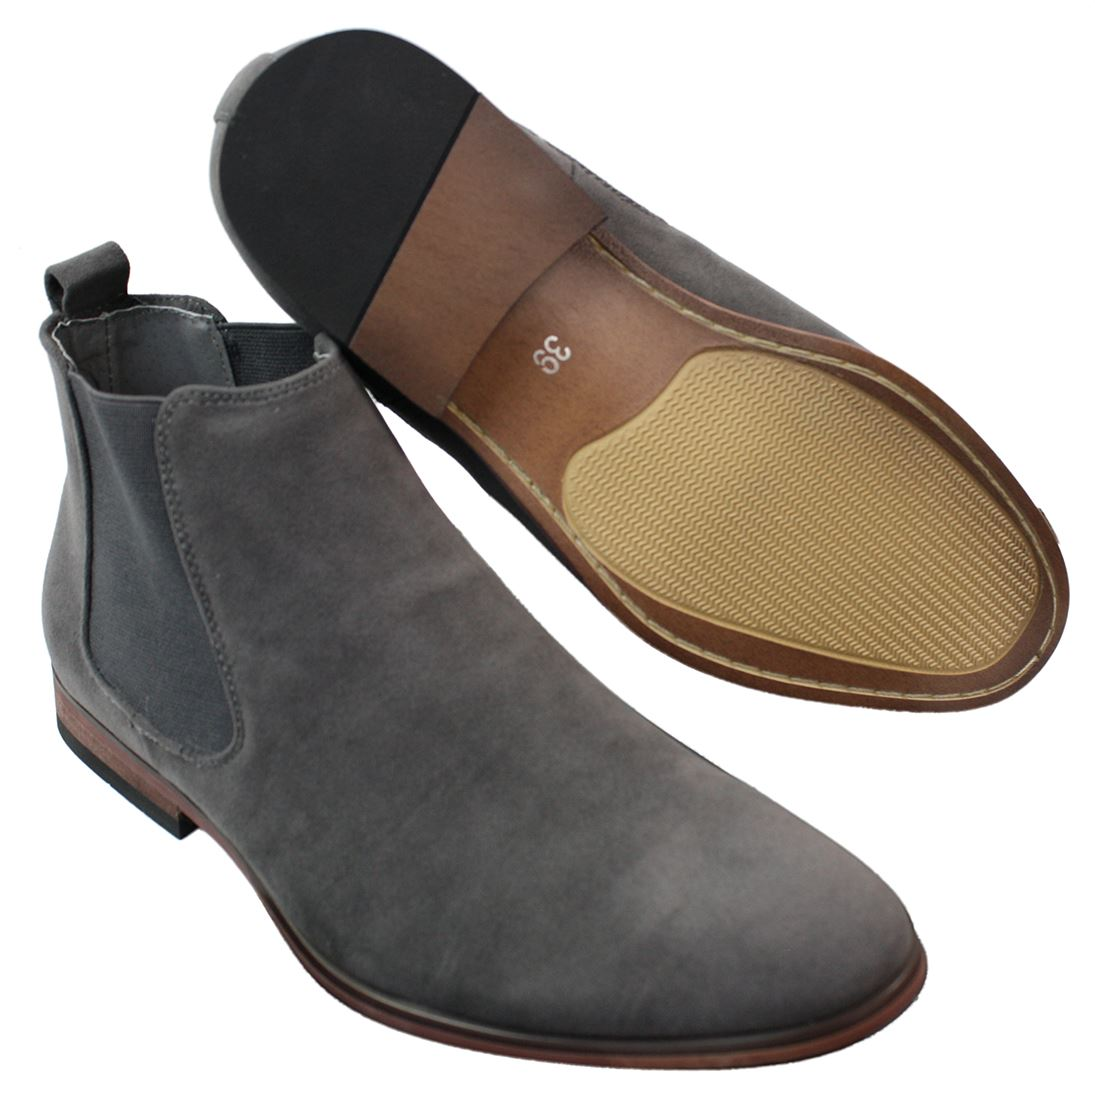 Suede Shoes Mens Amazon